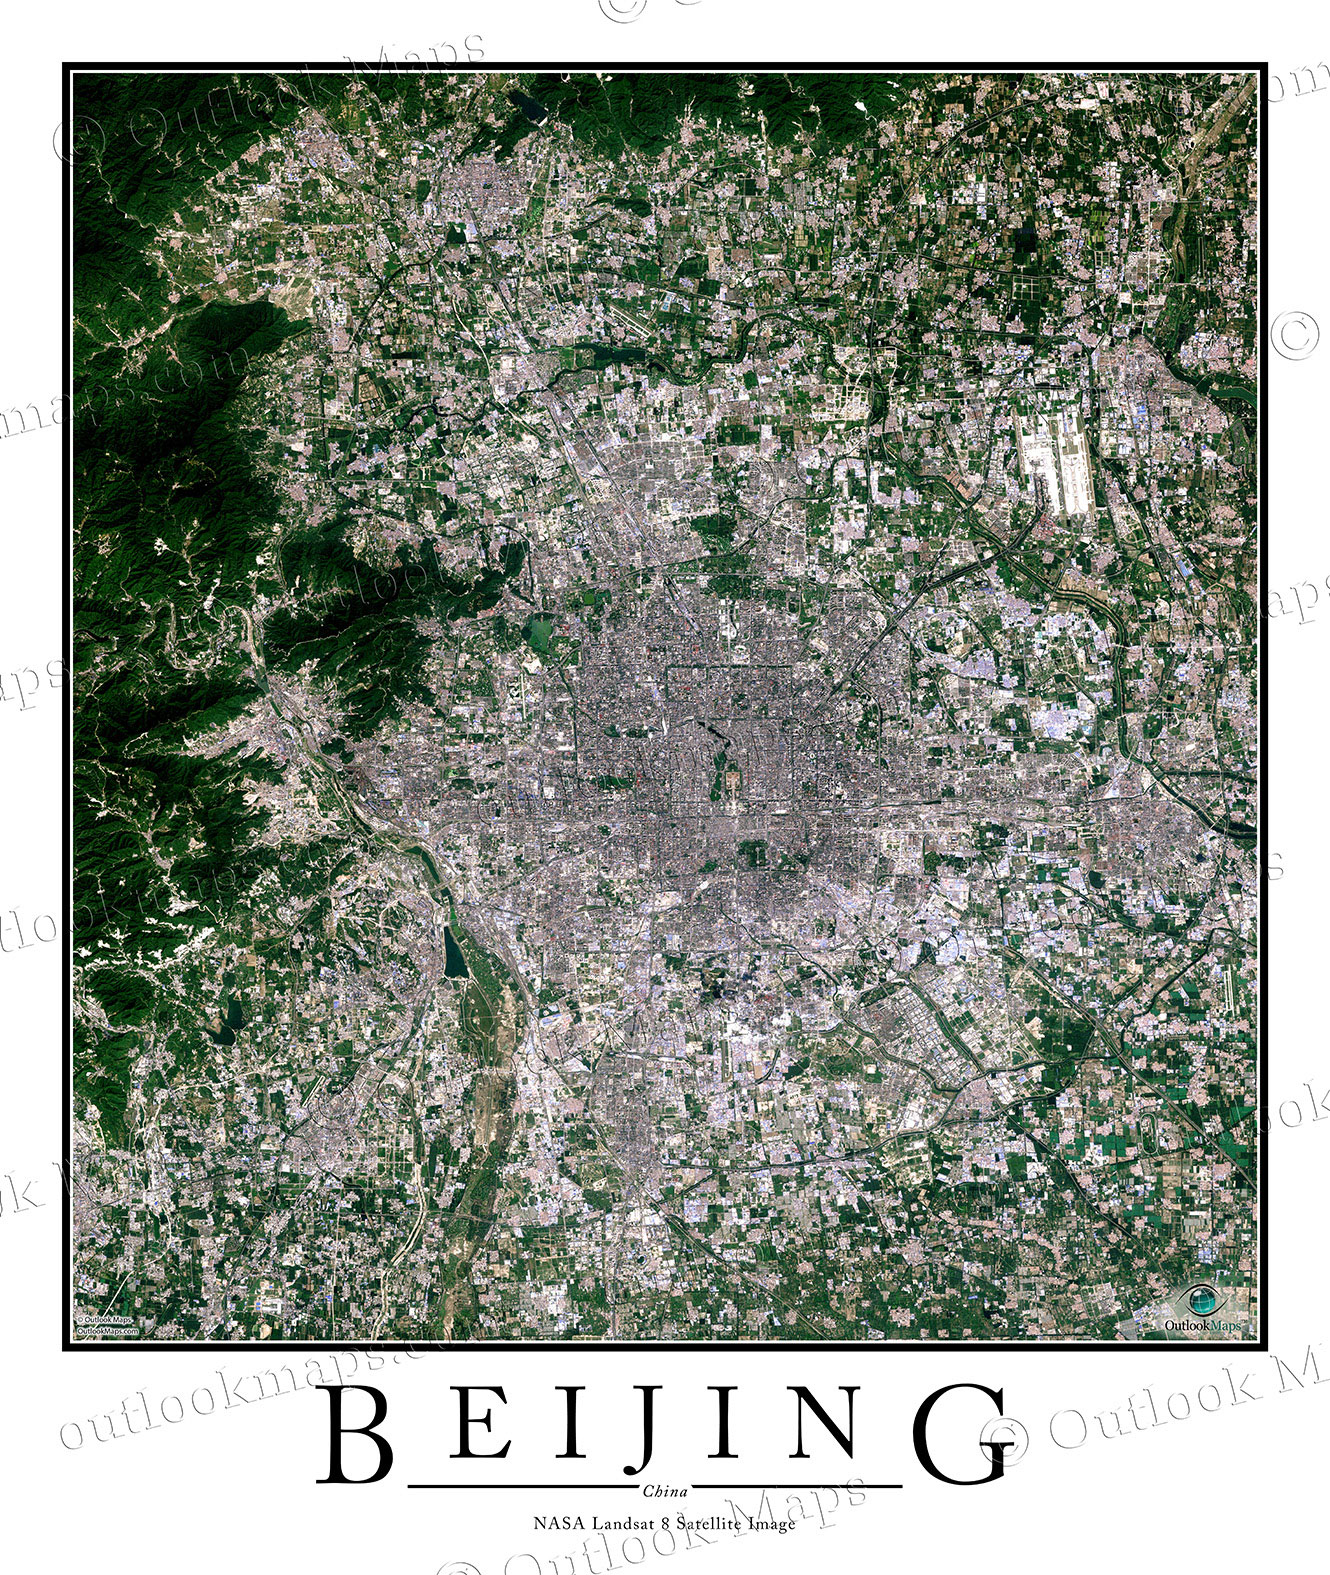 Beijing Satellite Map on old maps, real-time earth maps, zoom in on an address, zoom in using satellite, usa terrain maps, bing maps, zoom in satellites live, perspective earth maps, super zoom in maps, cold front weather maps, partinico sicily maps, nasa mars maps, silver switch maps, astronomy maps, air quality maps, google maps, gps maps, zoom satellite homes, nasa earth maps,